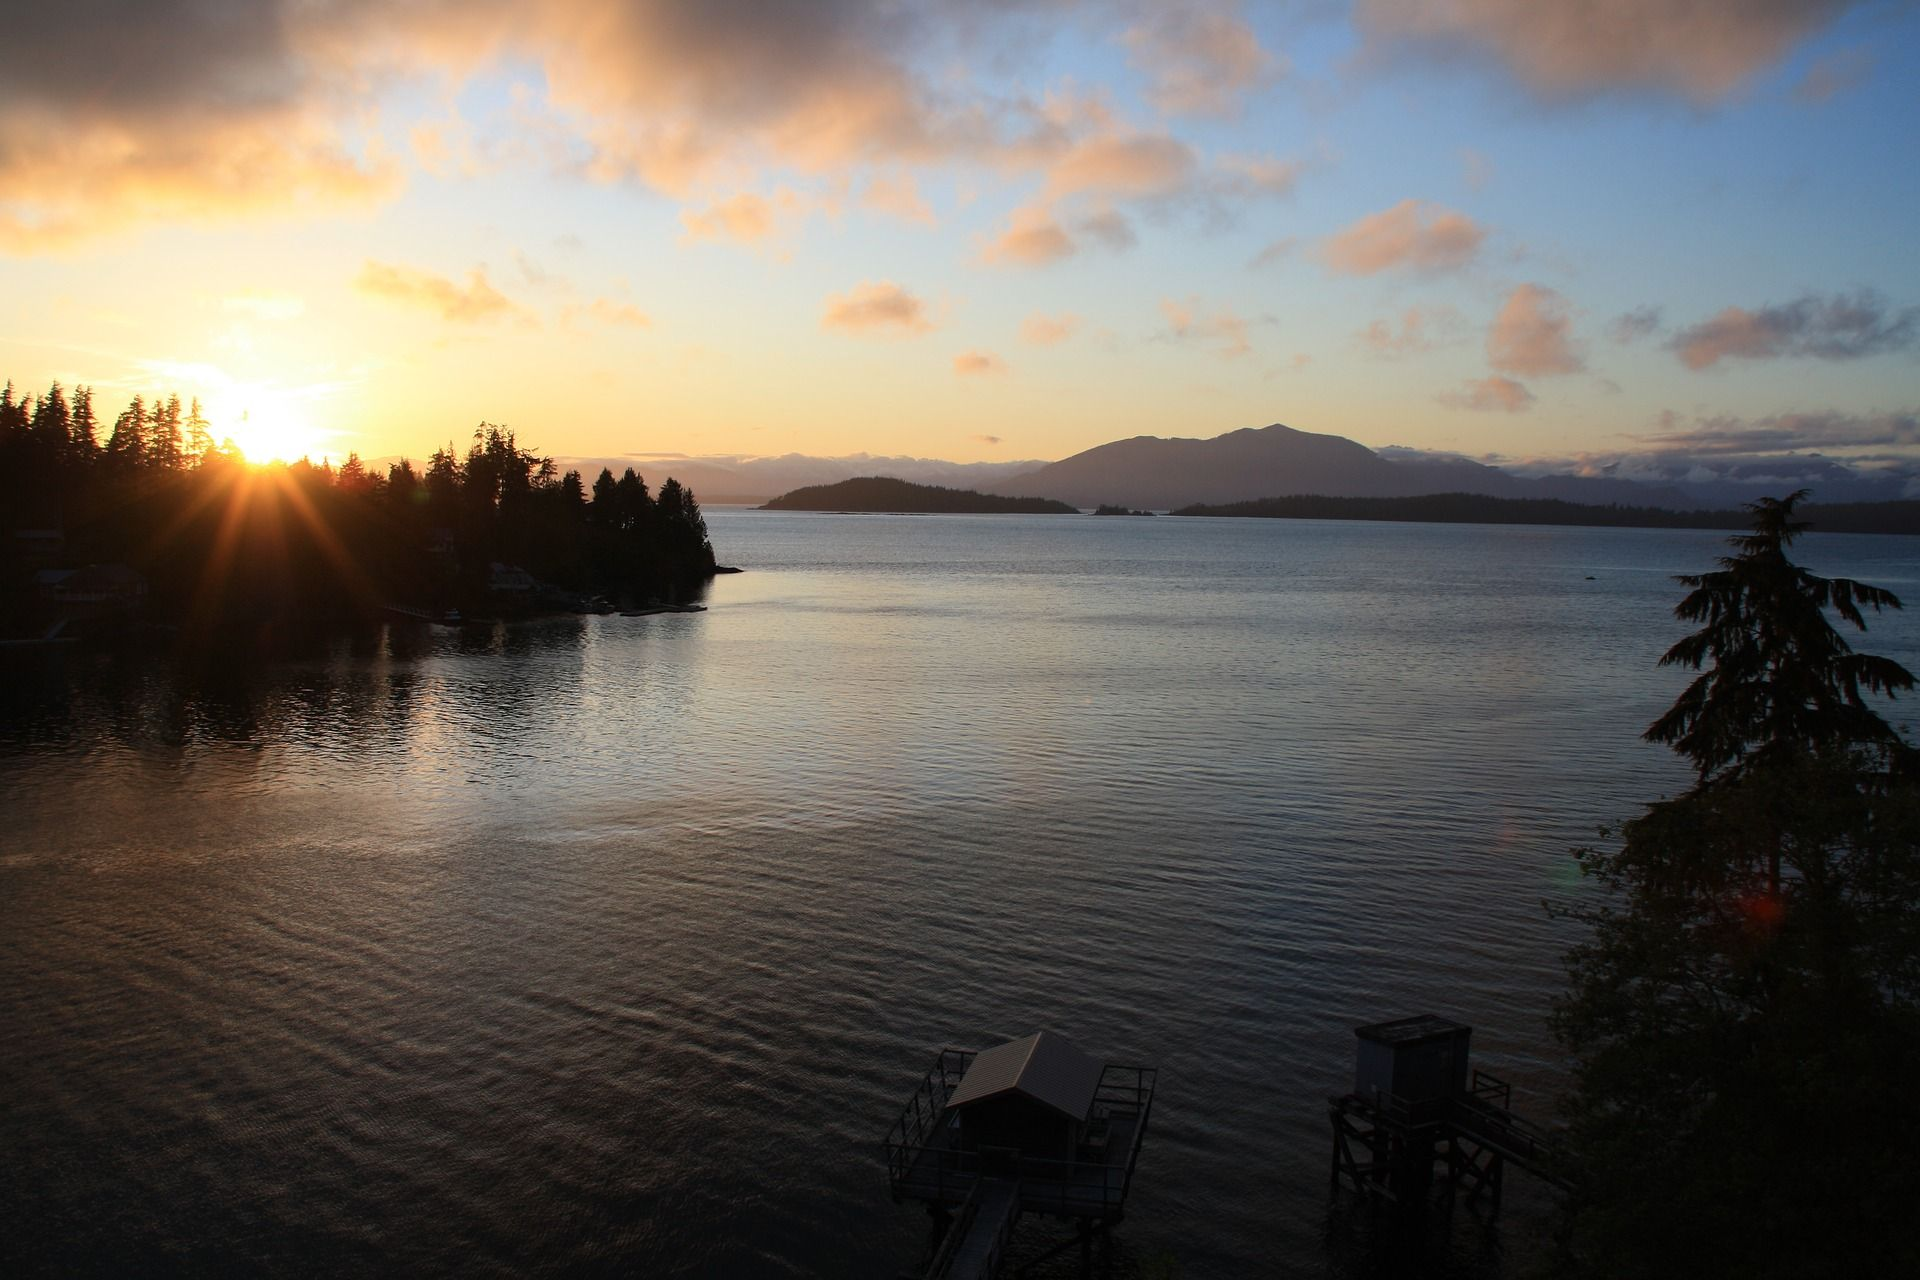 Kayaking Trip in Vancouver Island's Clayoquot Sound